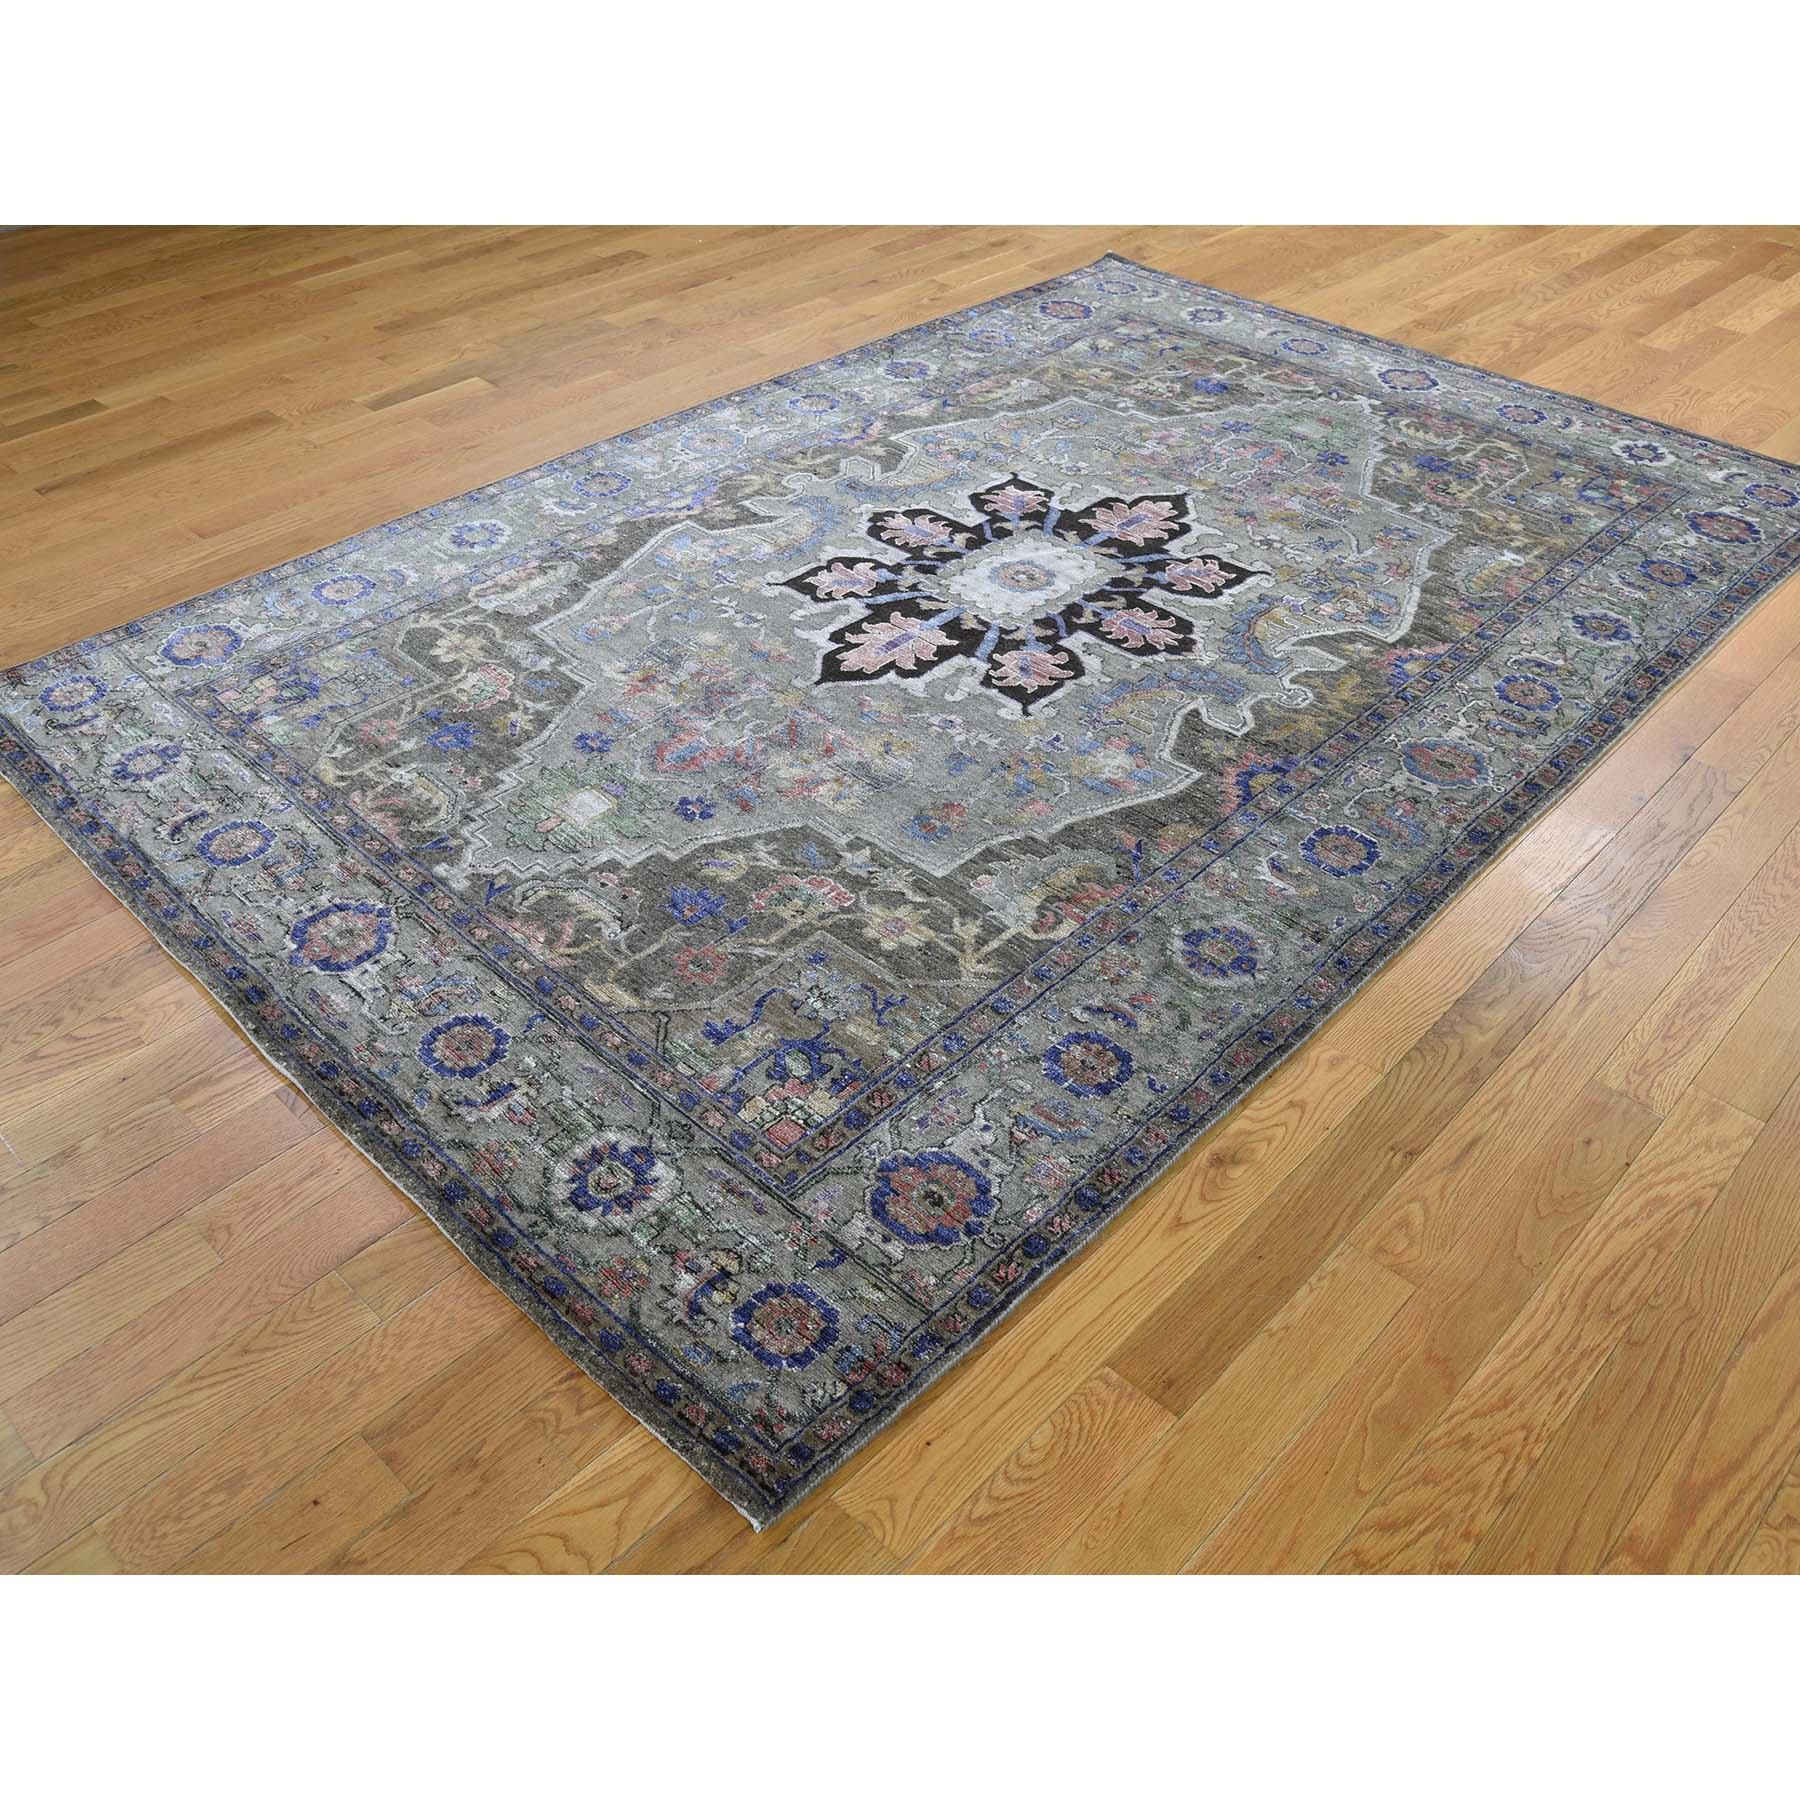 6-x9- Heriz Design Wool and Silk Hand-Knotted Oriental Rug